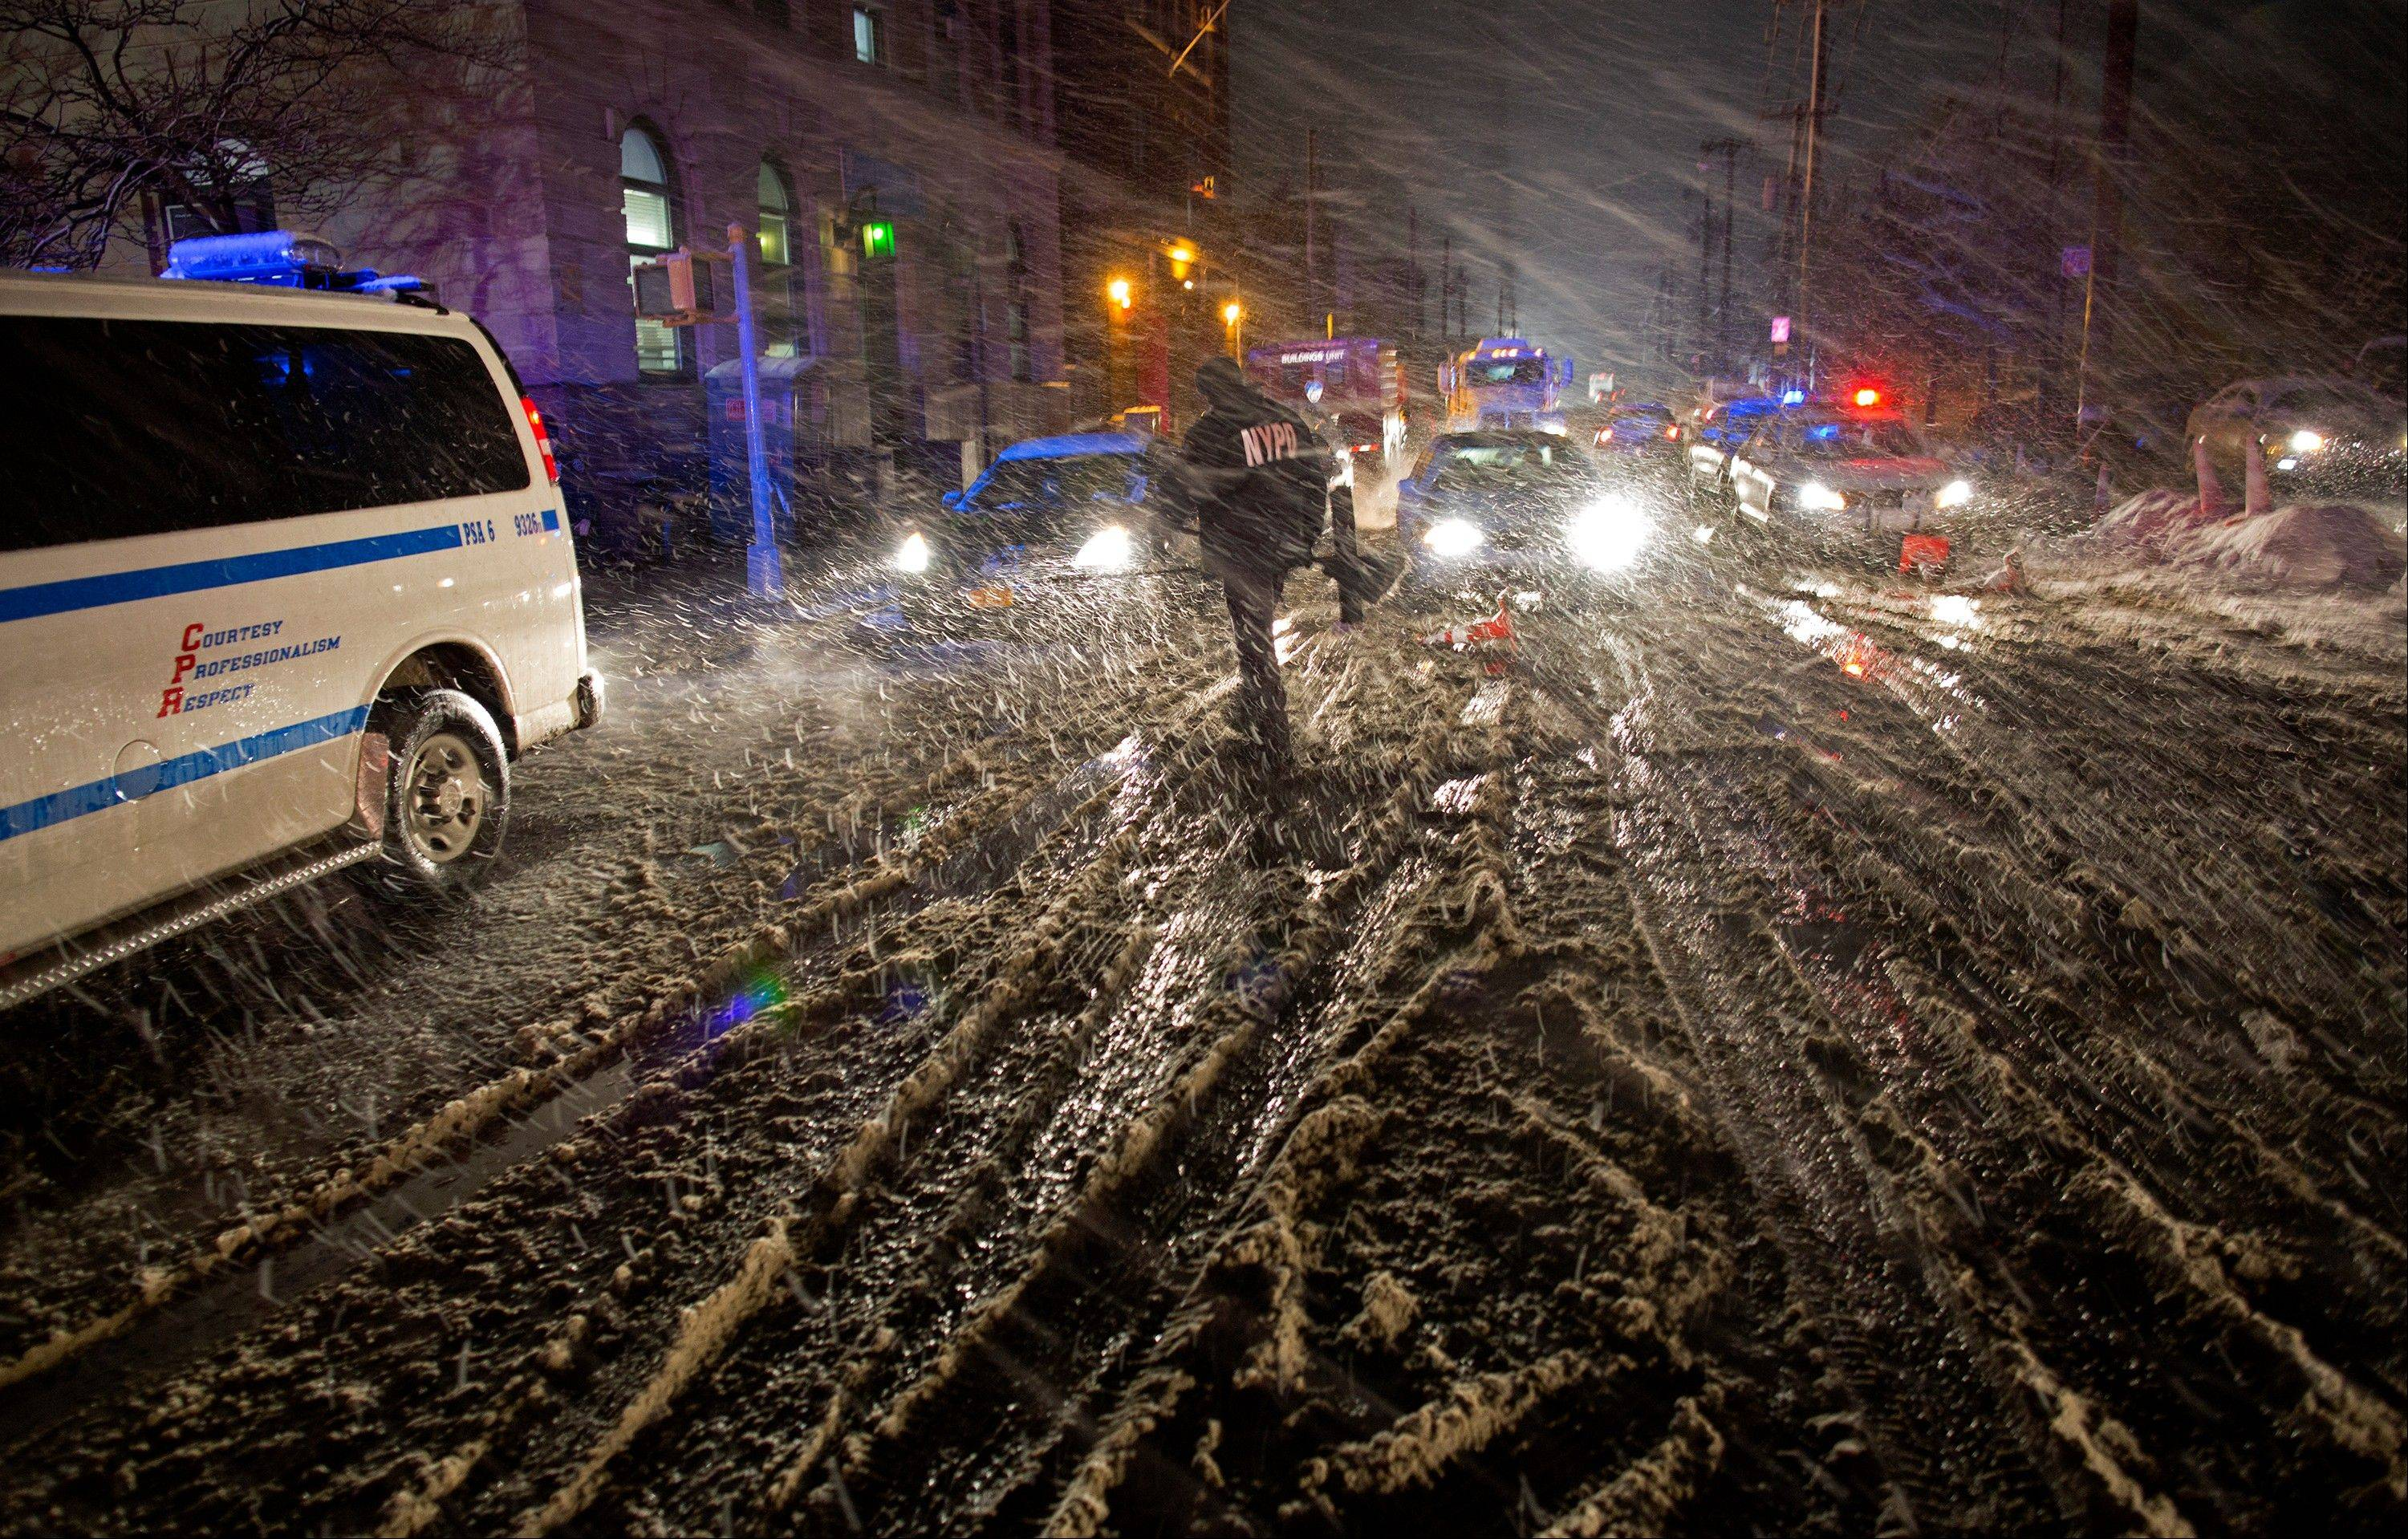 A member of the New York Police Department walks through snow as it accumulates in the Rockaway Beach neighborhood of the borough of Queens, New York, Wednesday, Nov. 7, 2012, in the wake of Superstorm Sandy. A Noreaster is complicating an already difficult situation with wind and blowing snow.